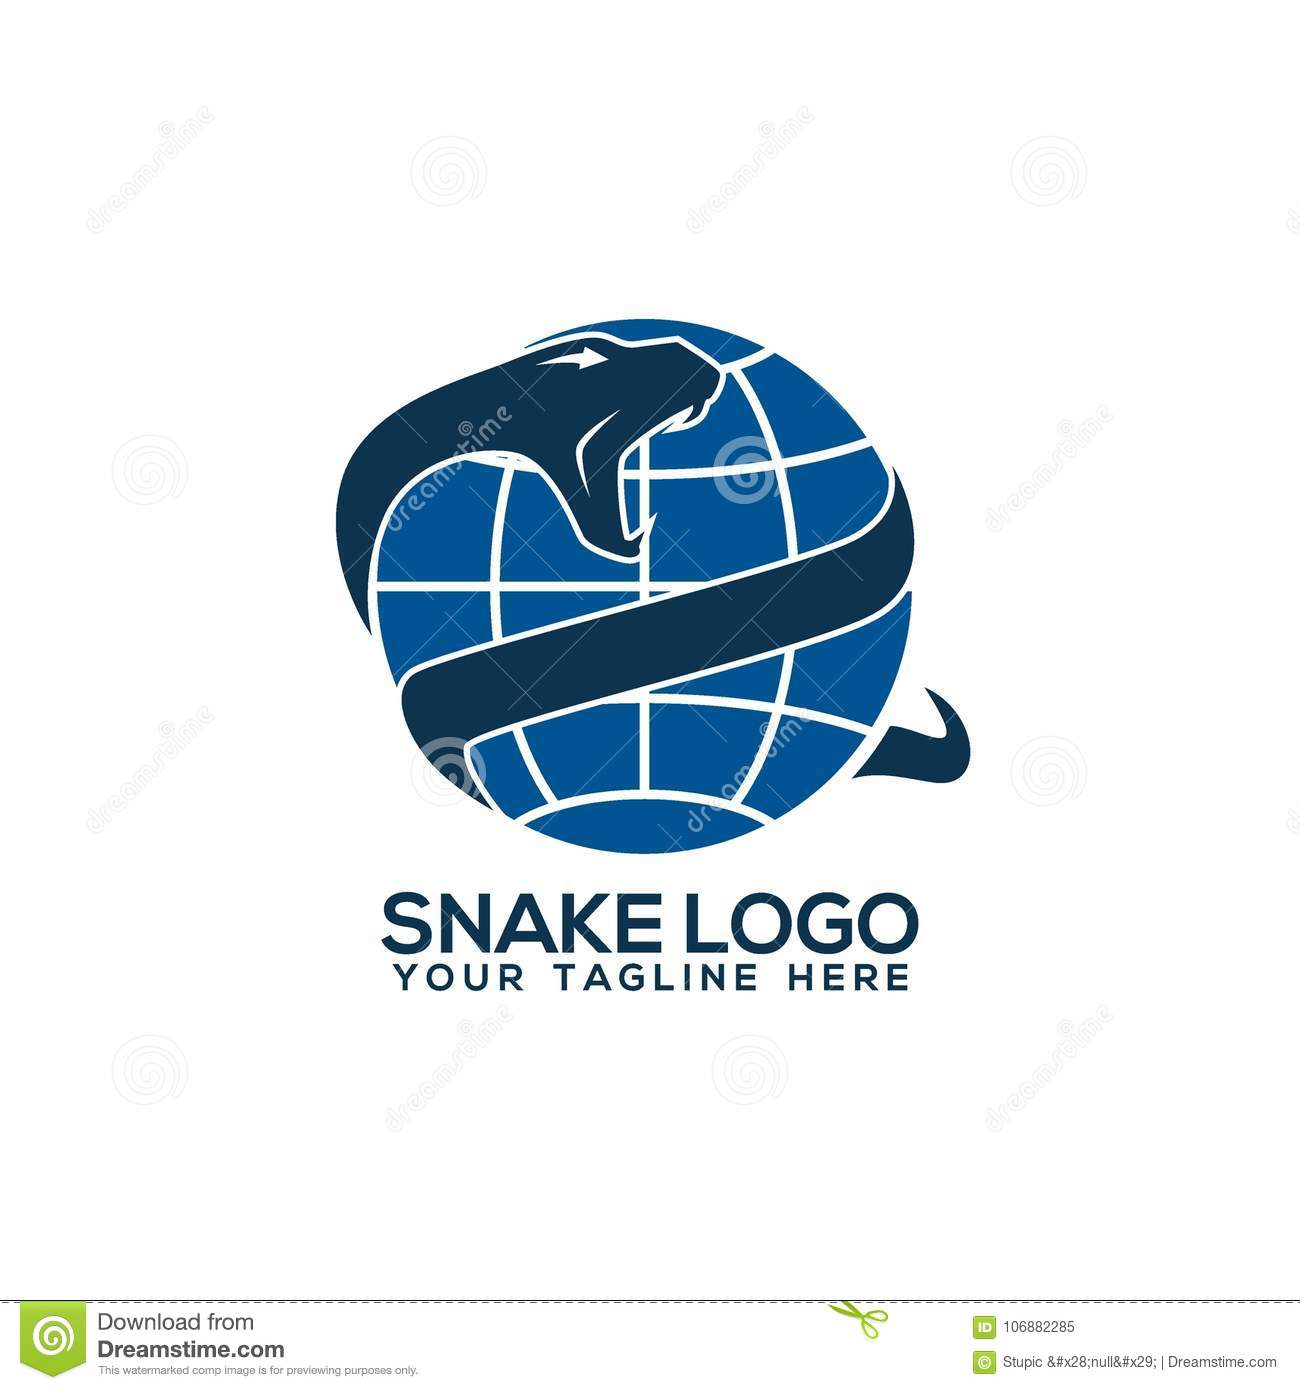 snake logo vector art logo template and illustration stock